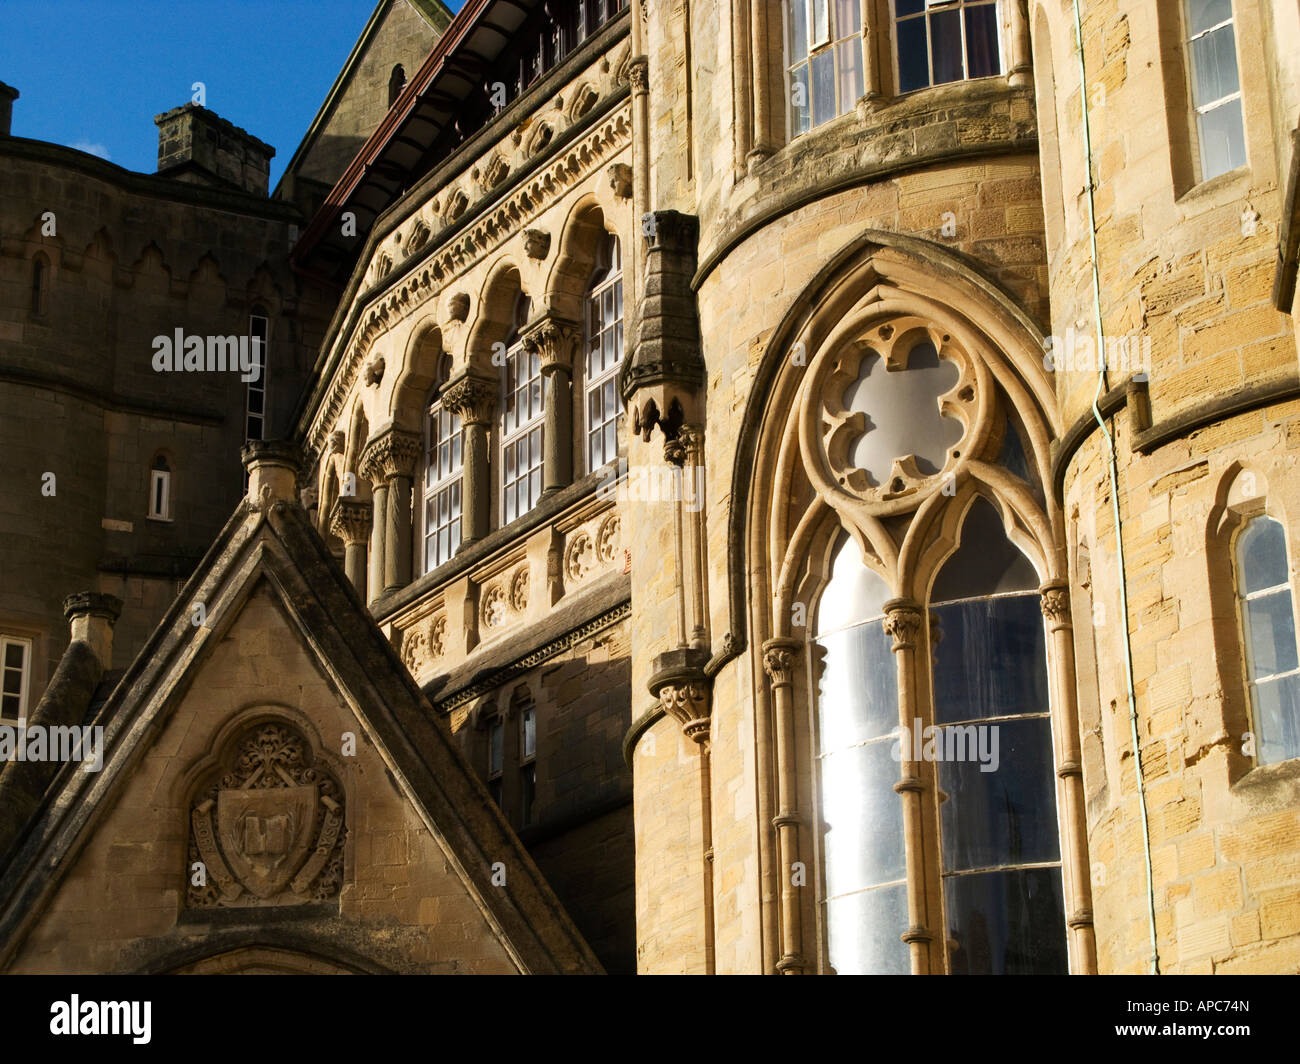 Exterior Detail Of The Old College Building Aberystwyth University Victorian Gothic Architecture